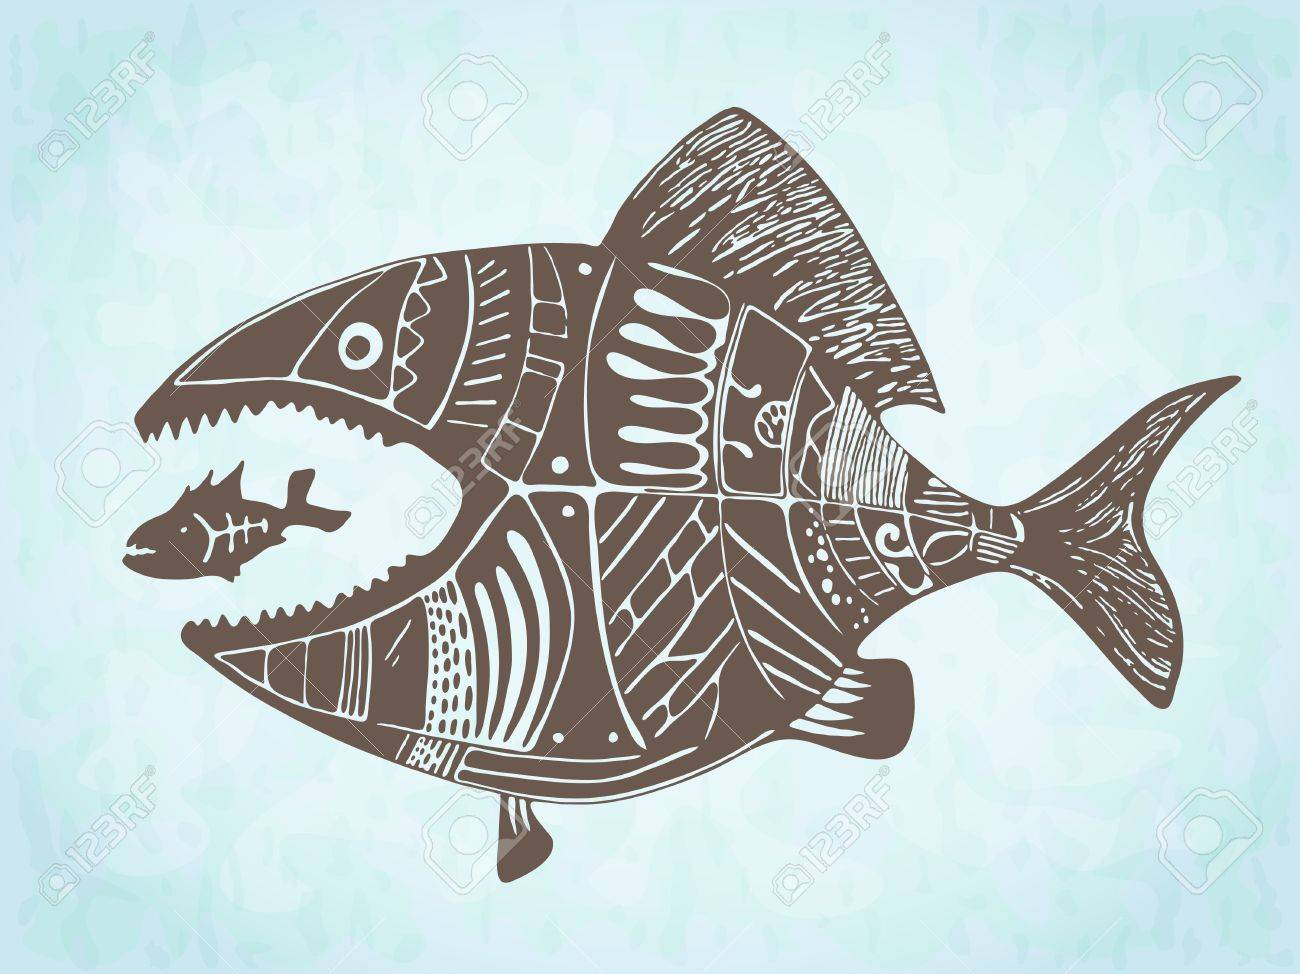 Fish Eating Fish Tattoo Vector Hand Drawn Fish Eating